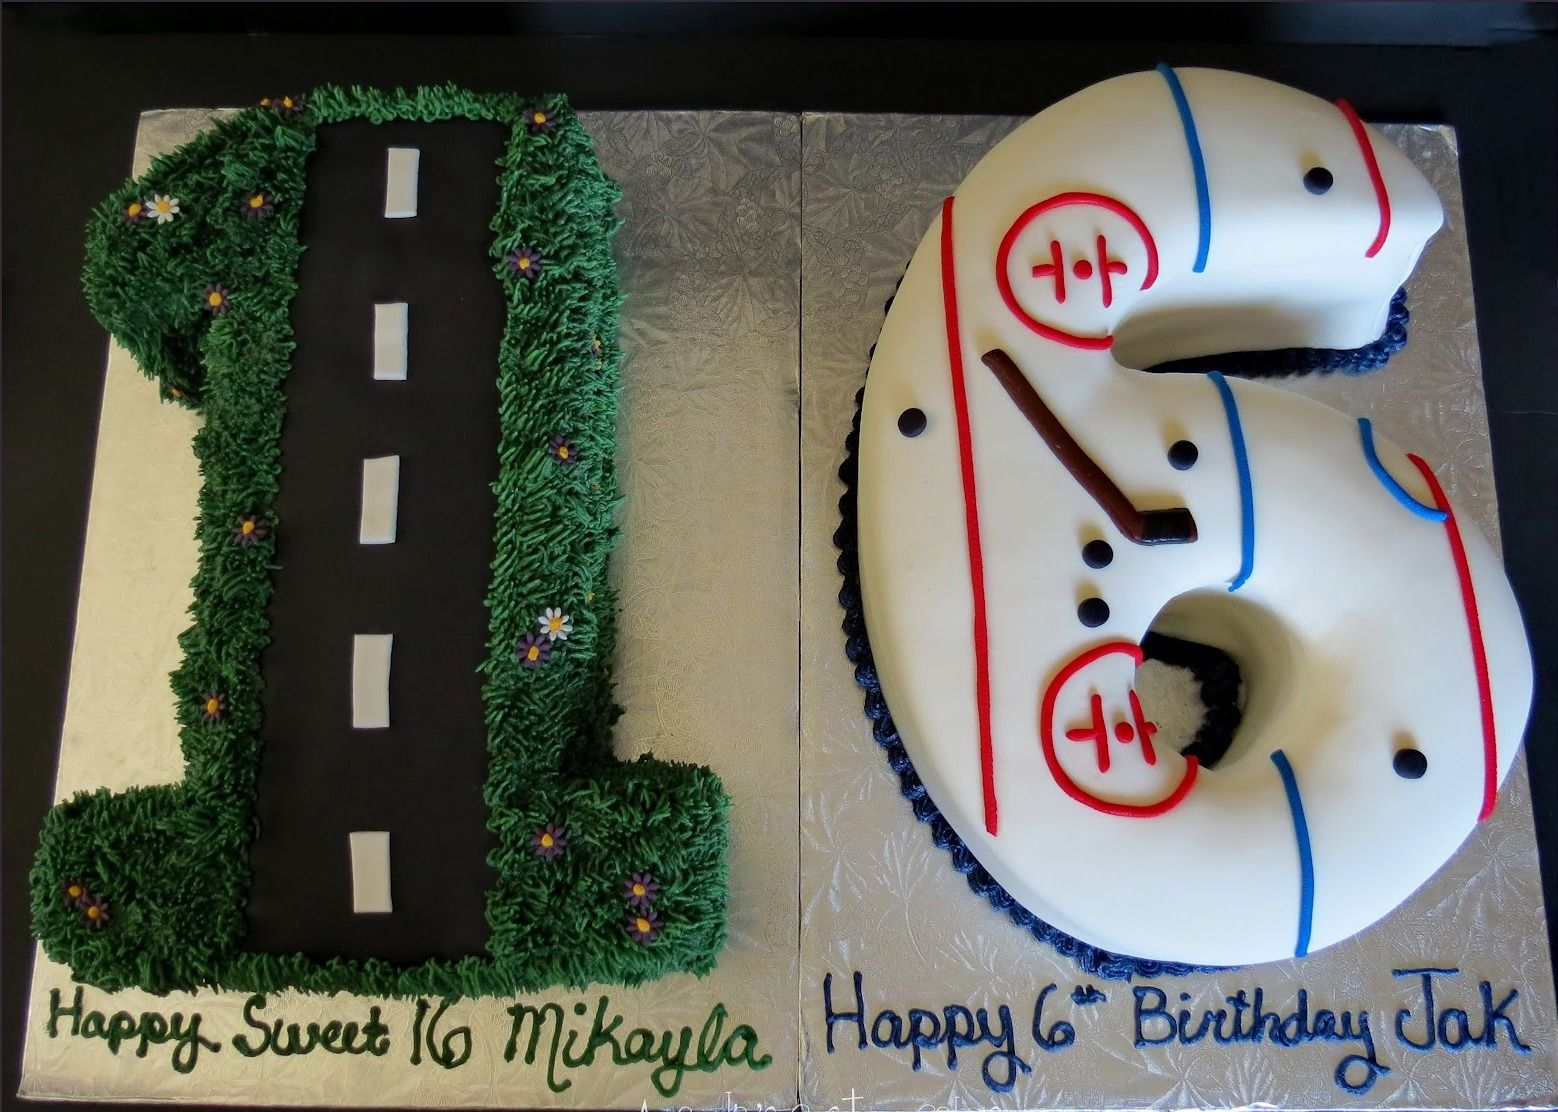 16 Birthday Cake Ideas For Boys 82564 Boy 16th Birthday Ca